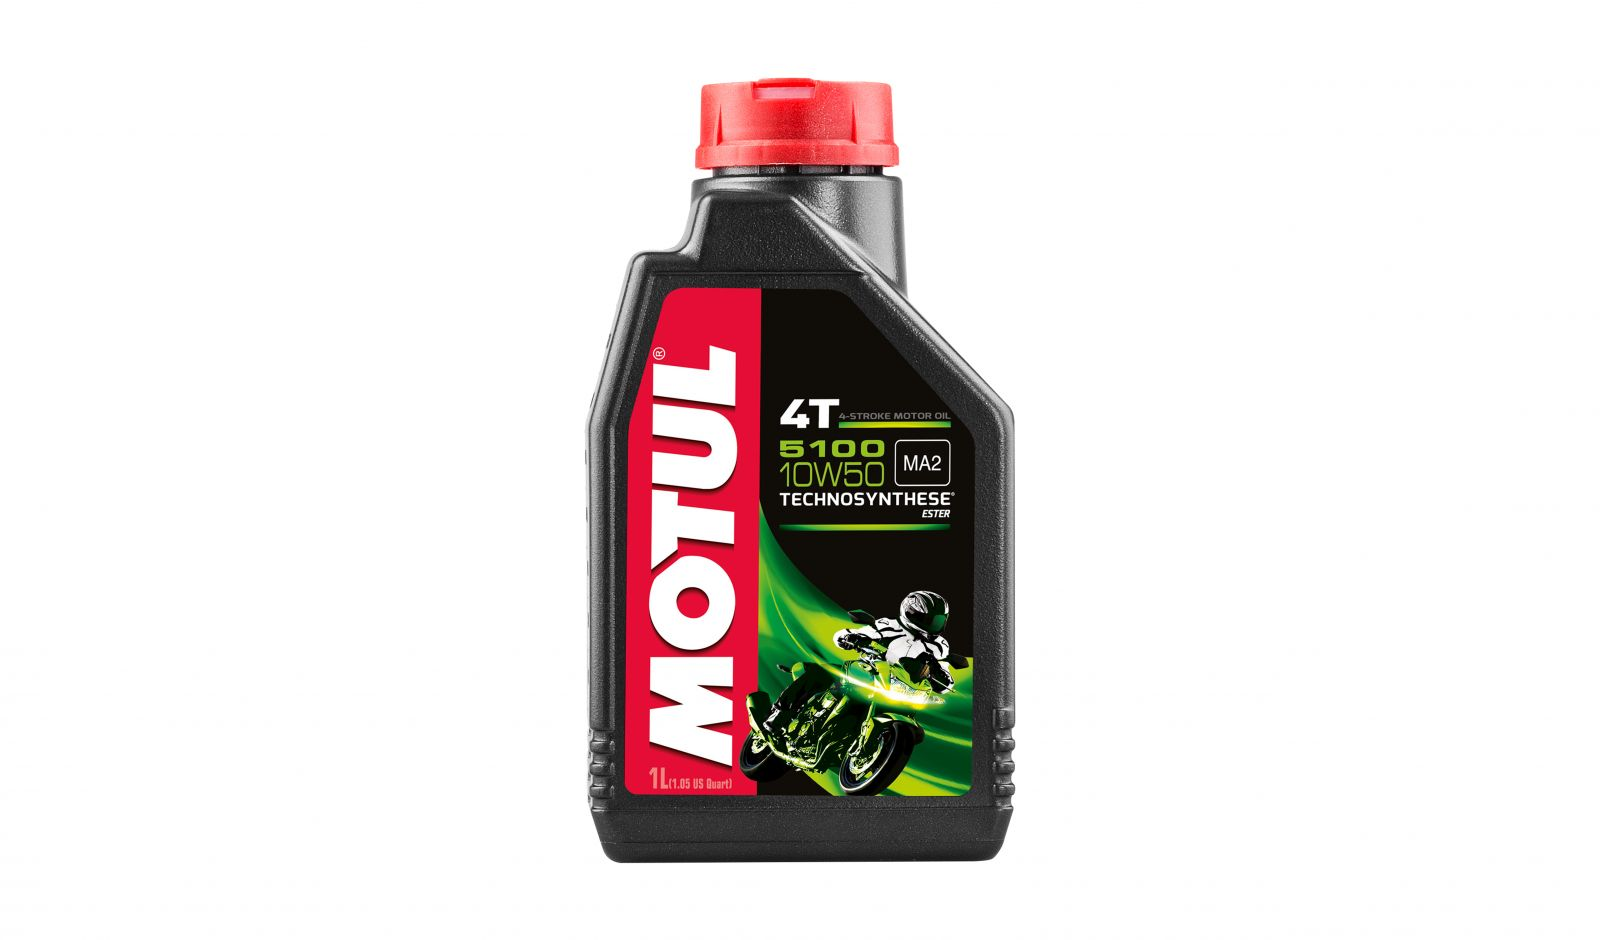 4 stroke engine oils - 670151M image